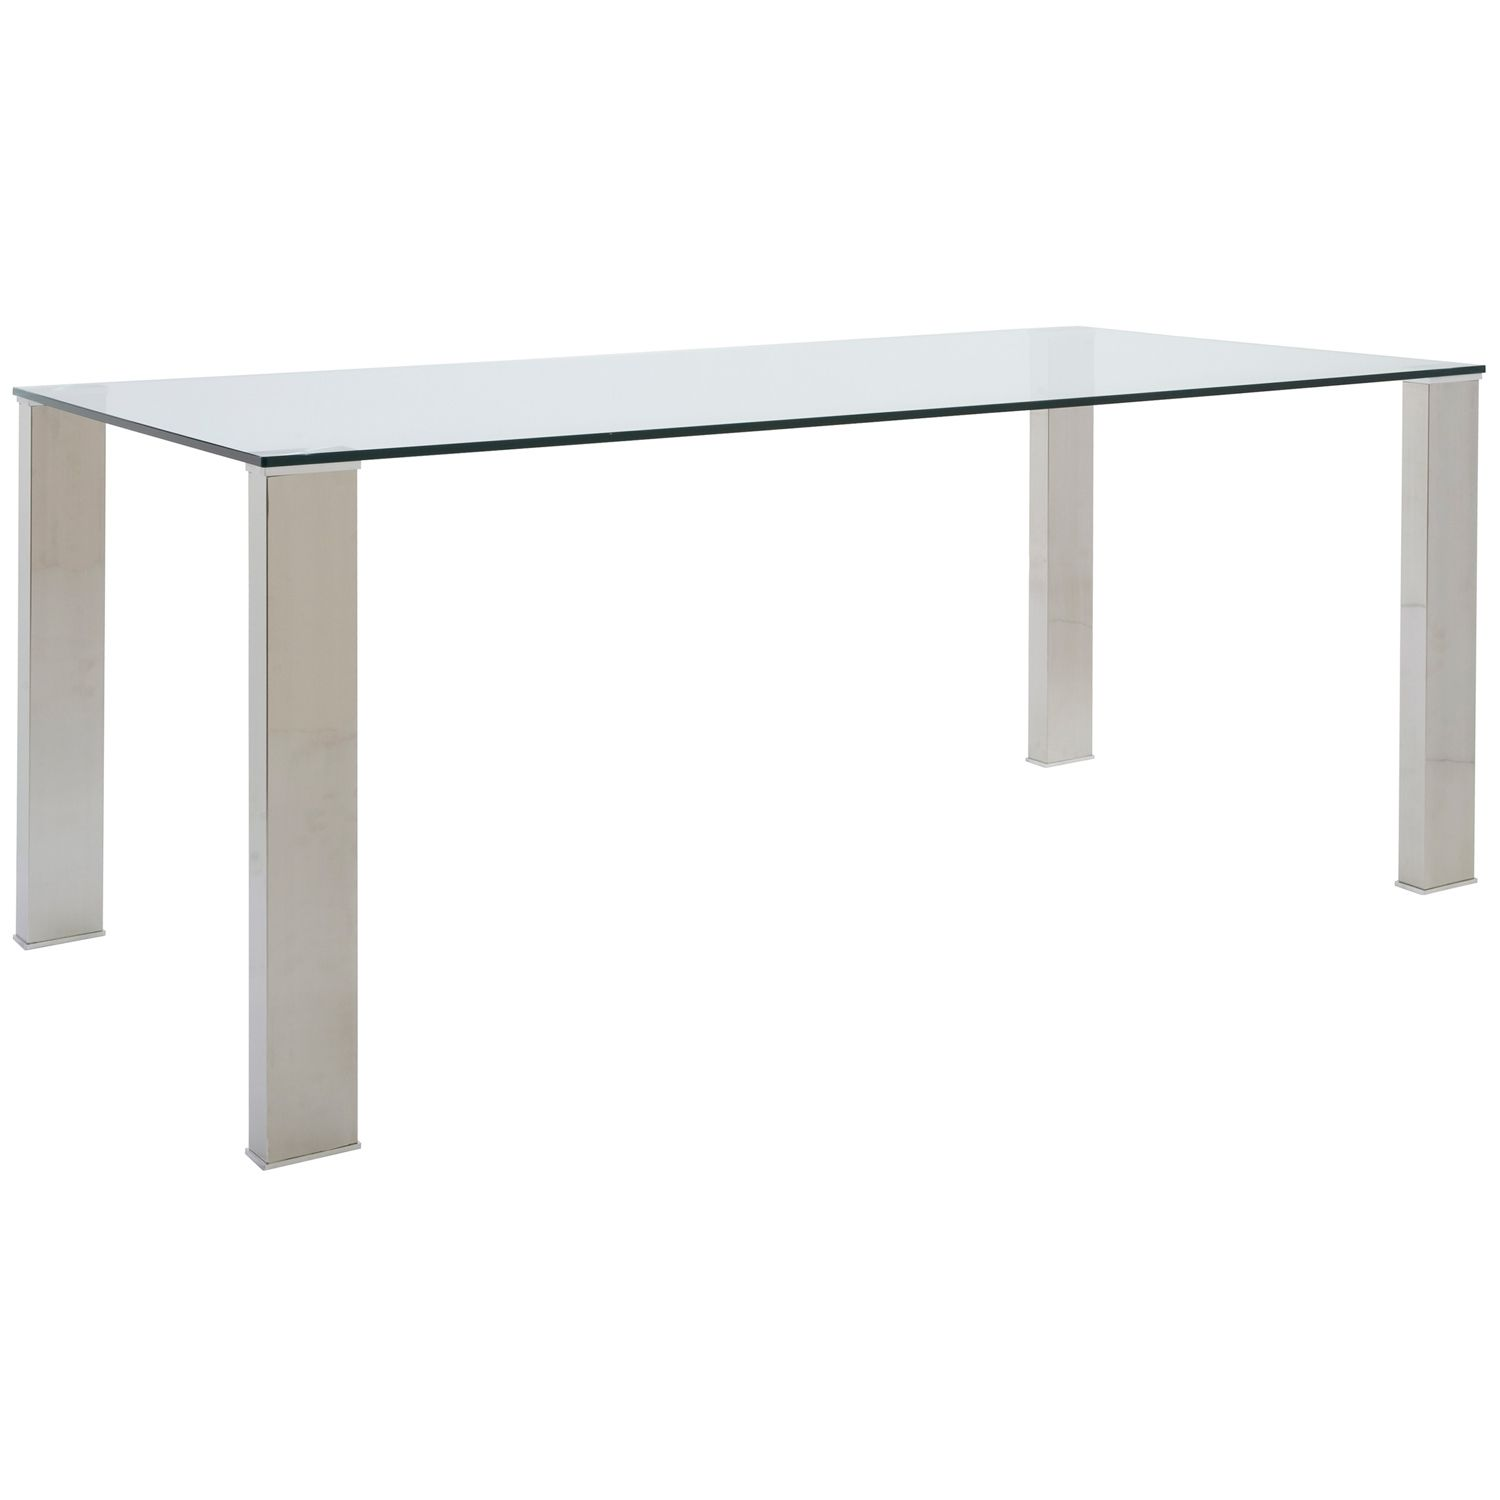 Found it at www.dcgstores.com - ♥ ♥ Beth Dining Table - Stainless Steel Legs, Clear Tempered Glass ♥ ♥